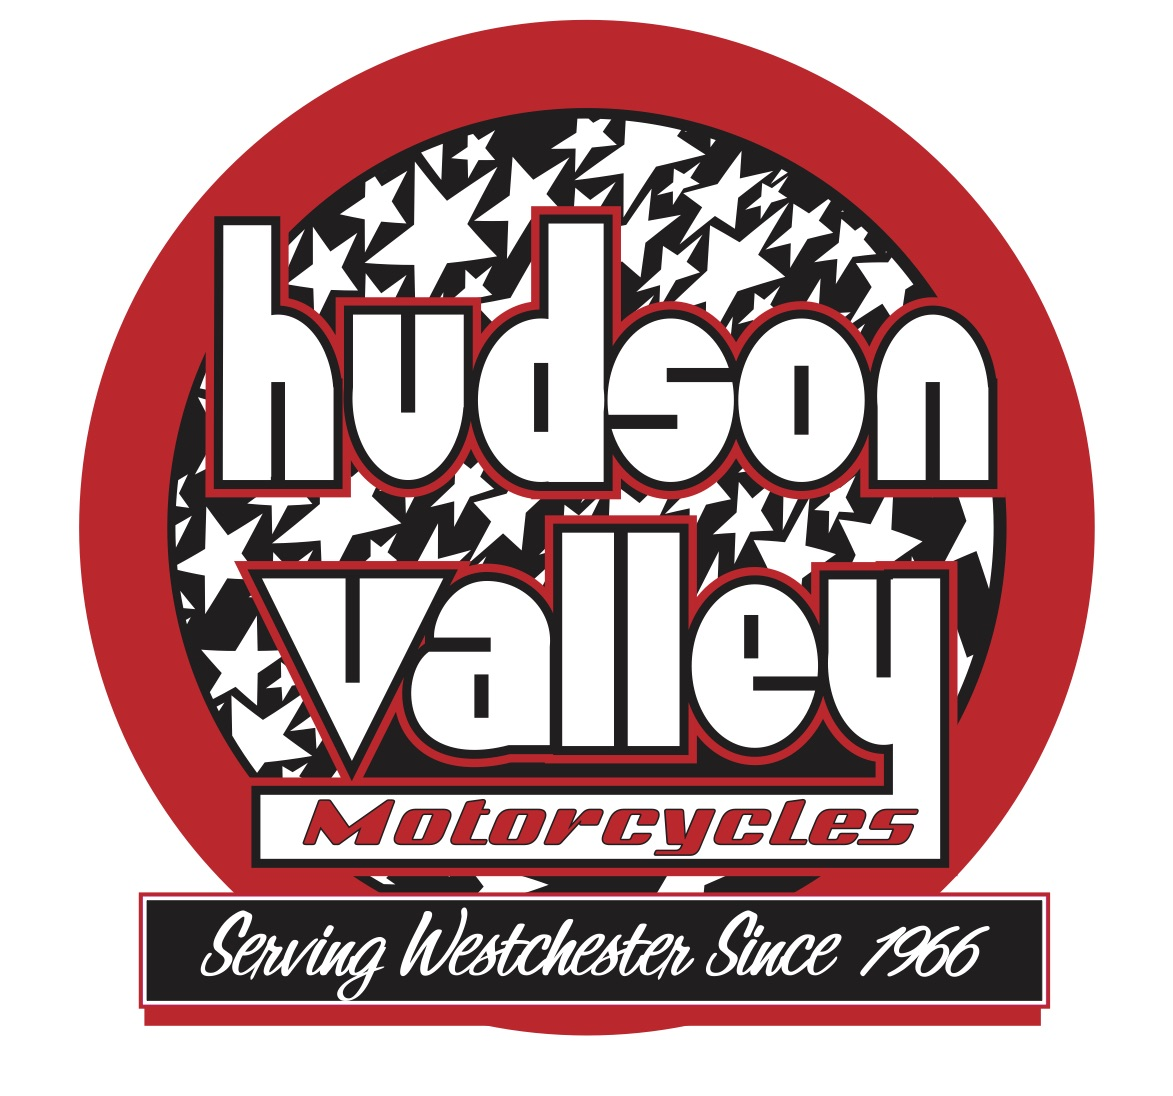 2015 ducati preview tour stops at hudson valley motorcycles in